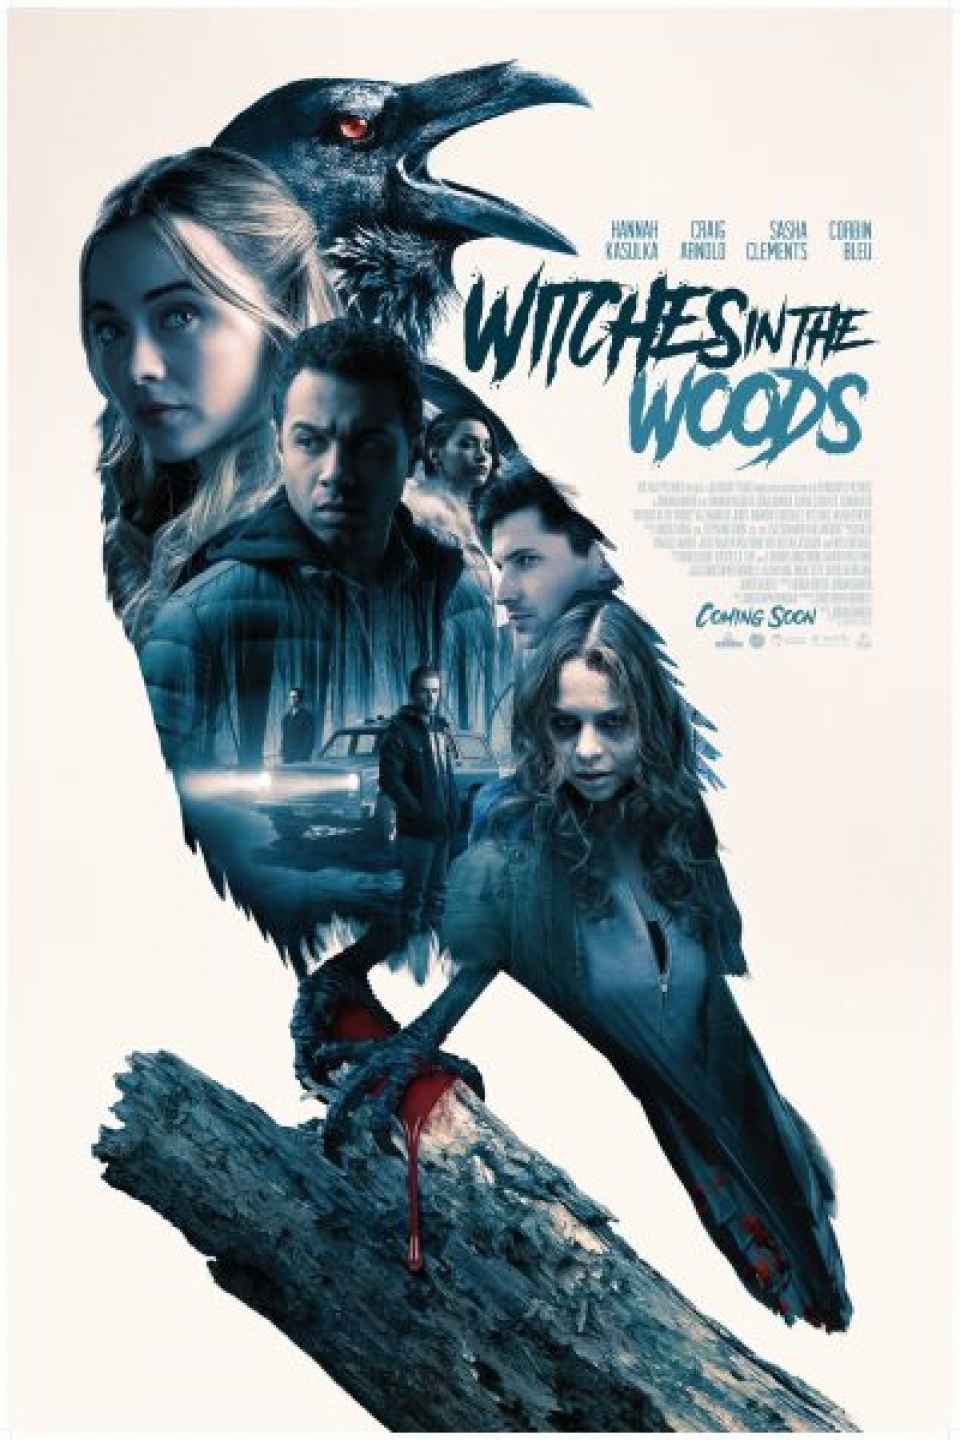 WITCHES IN THE WOODS (2019) คำสาปแห่งป่าแม่มด